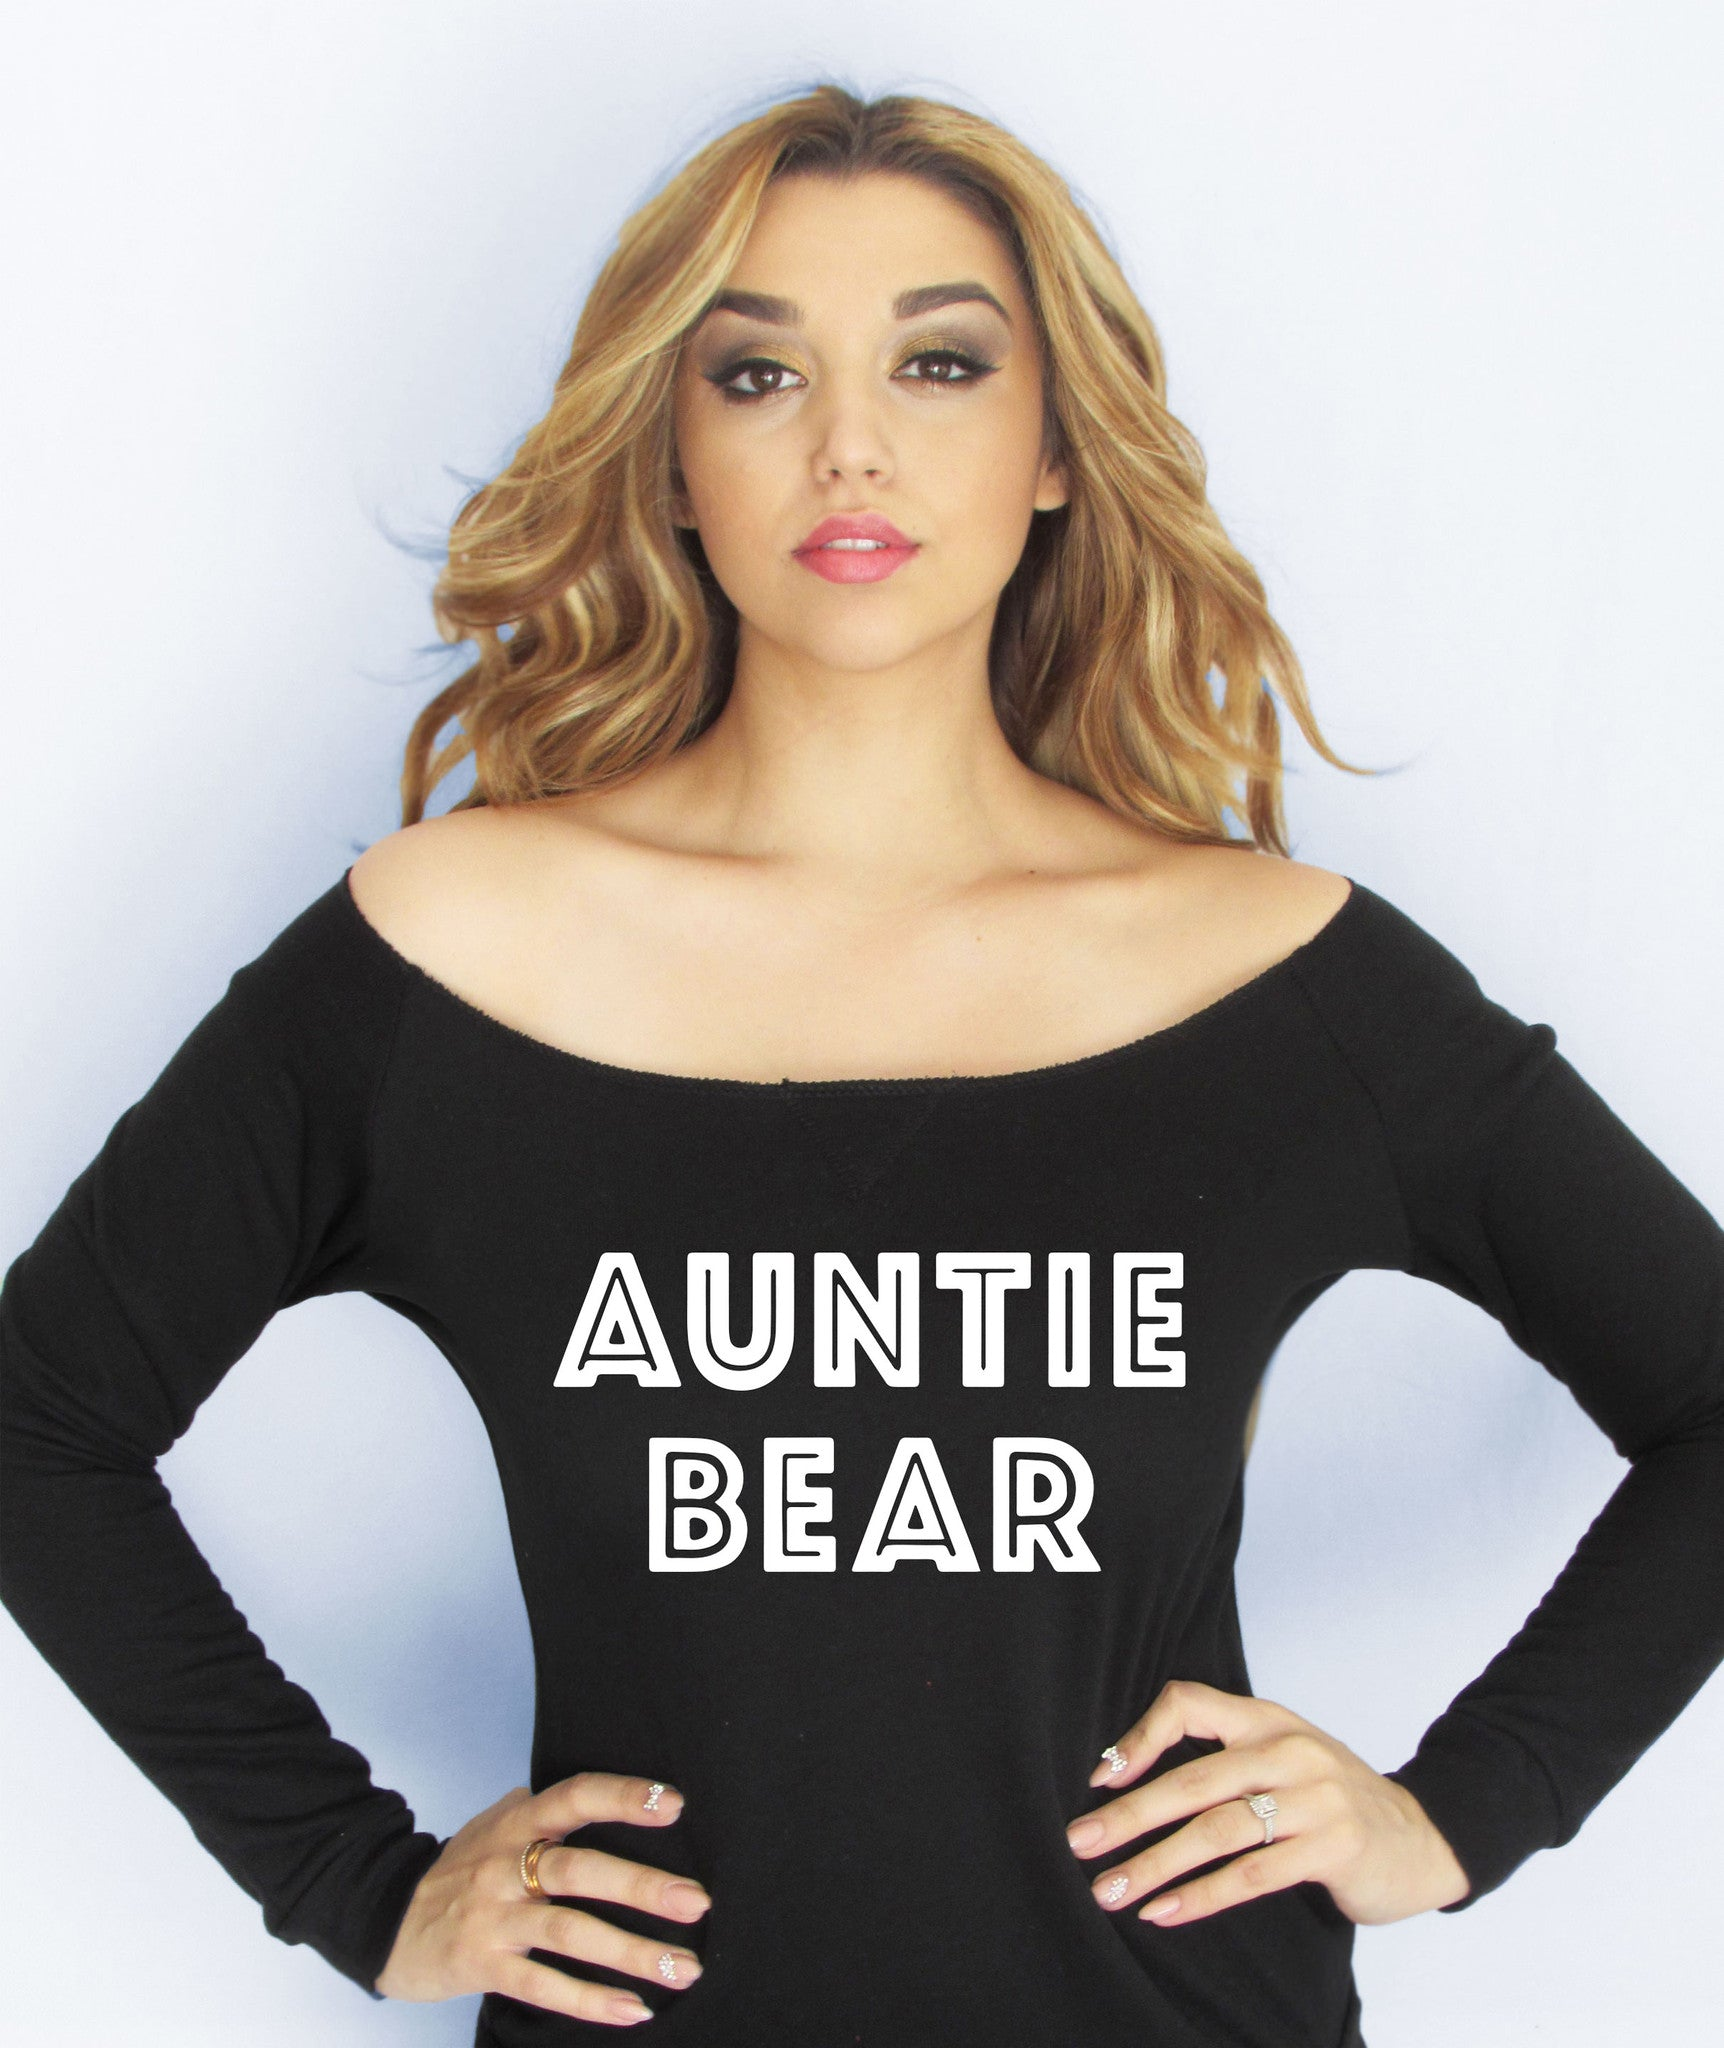 auntie bear sweater girl fresh workout fit fitness